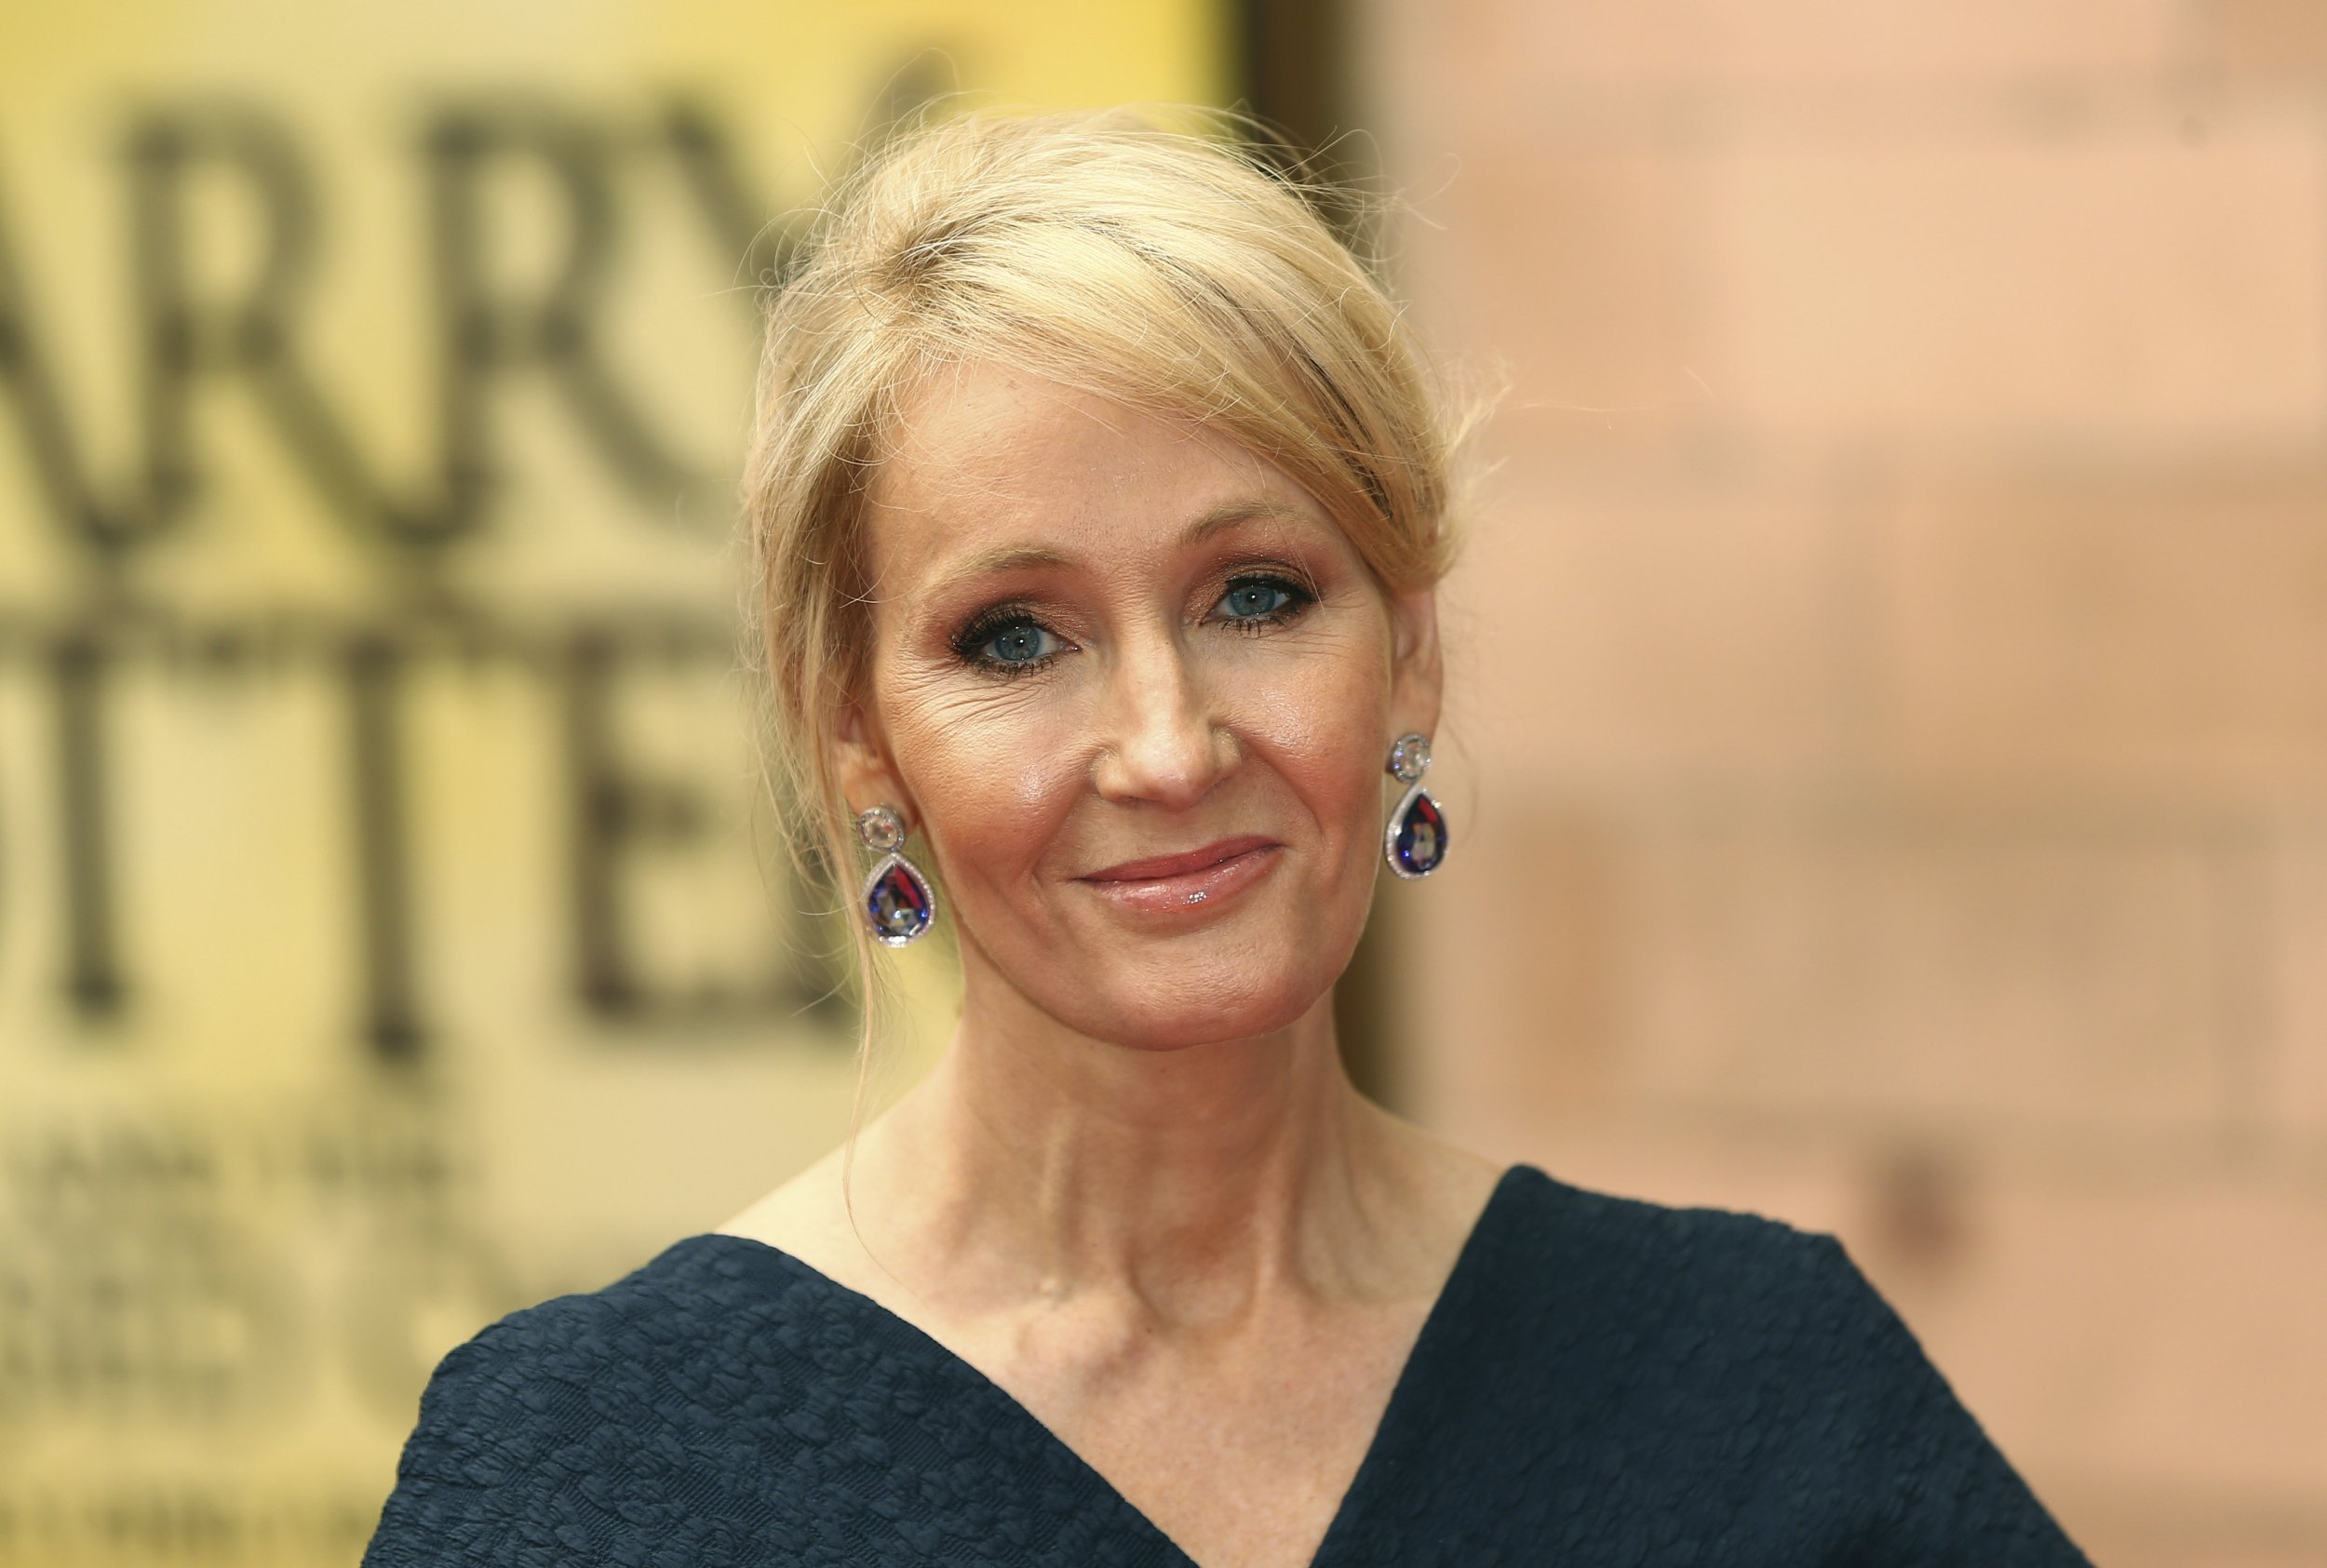 harry potter at j k rowling s best lines on good and evil  author j k rowling poses for photographers in london in 2016 her first novel harry potter and the philosopher s stone was published in the u k on